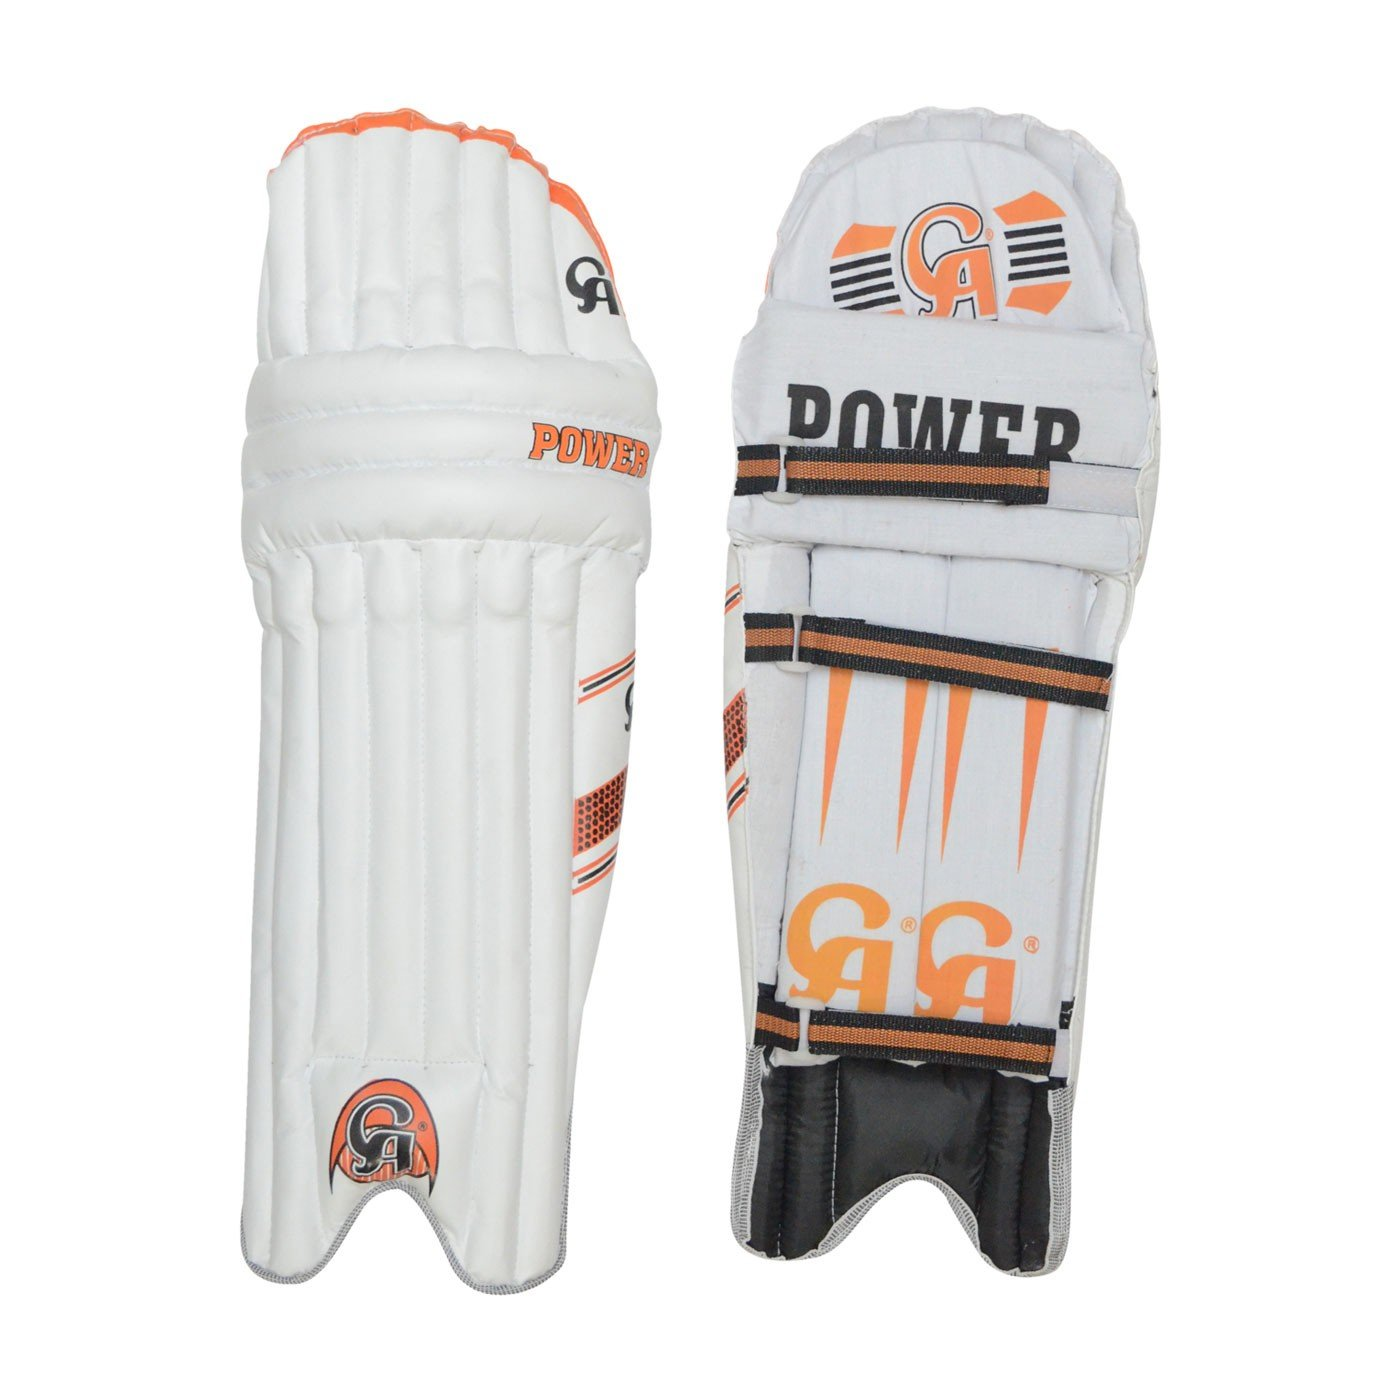 CA Power Batting Pad Super light weight Made of imported materials Available in different sizes